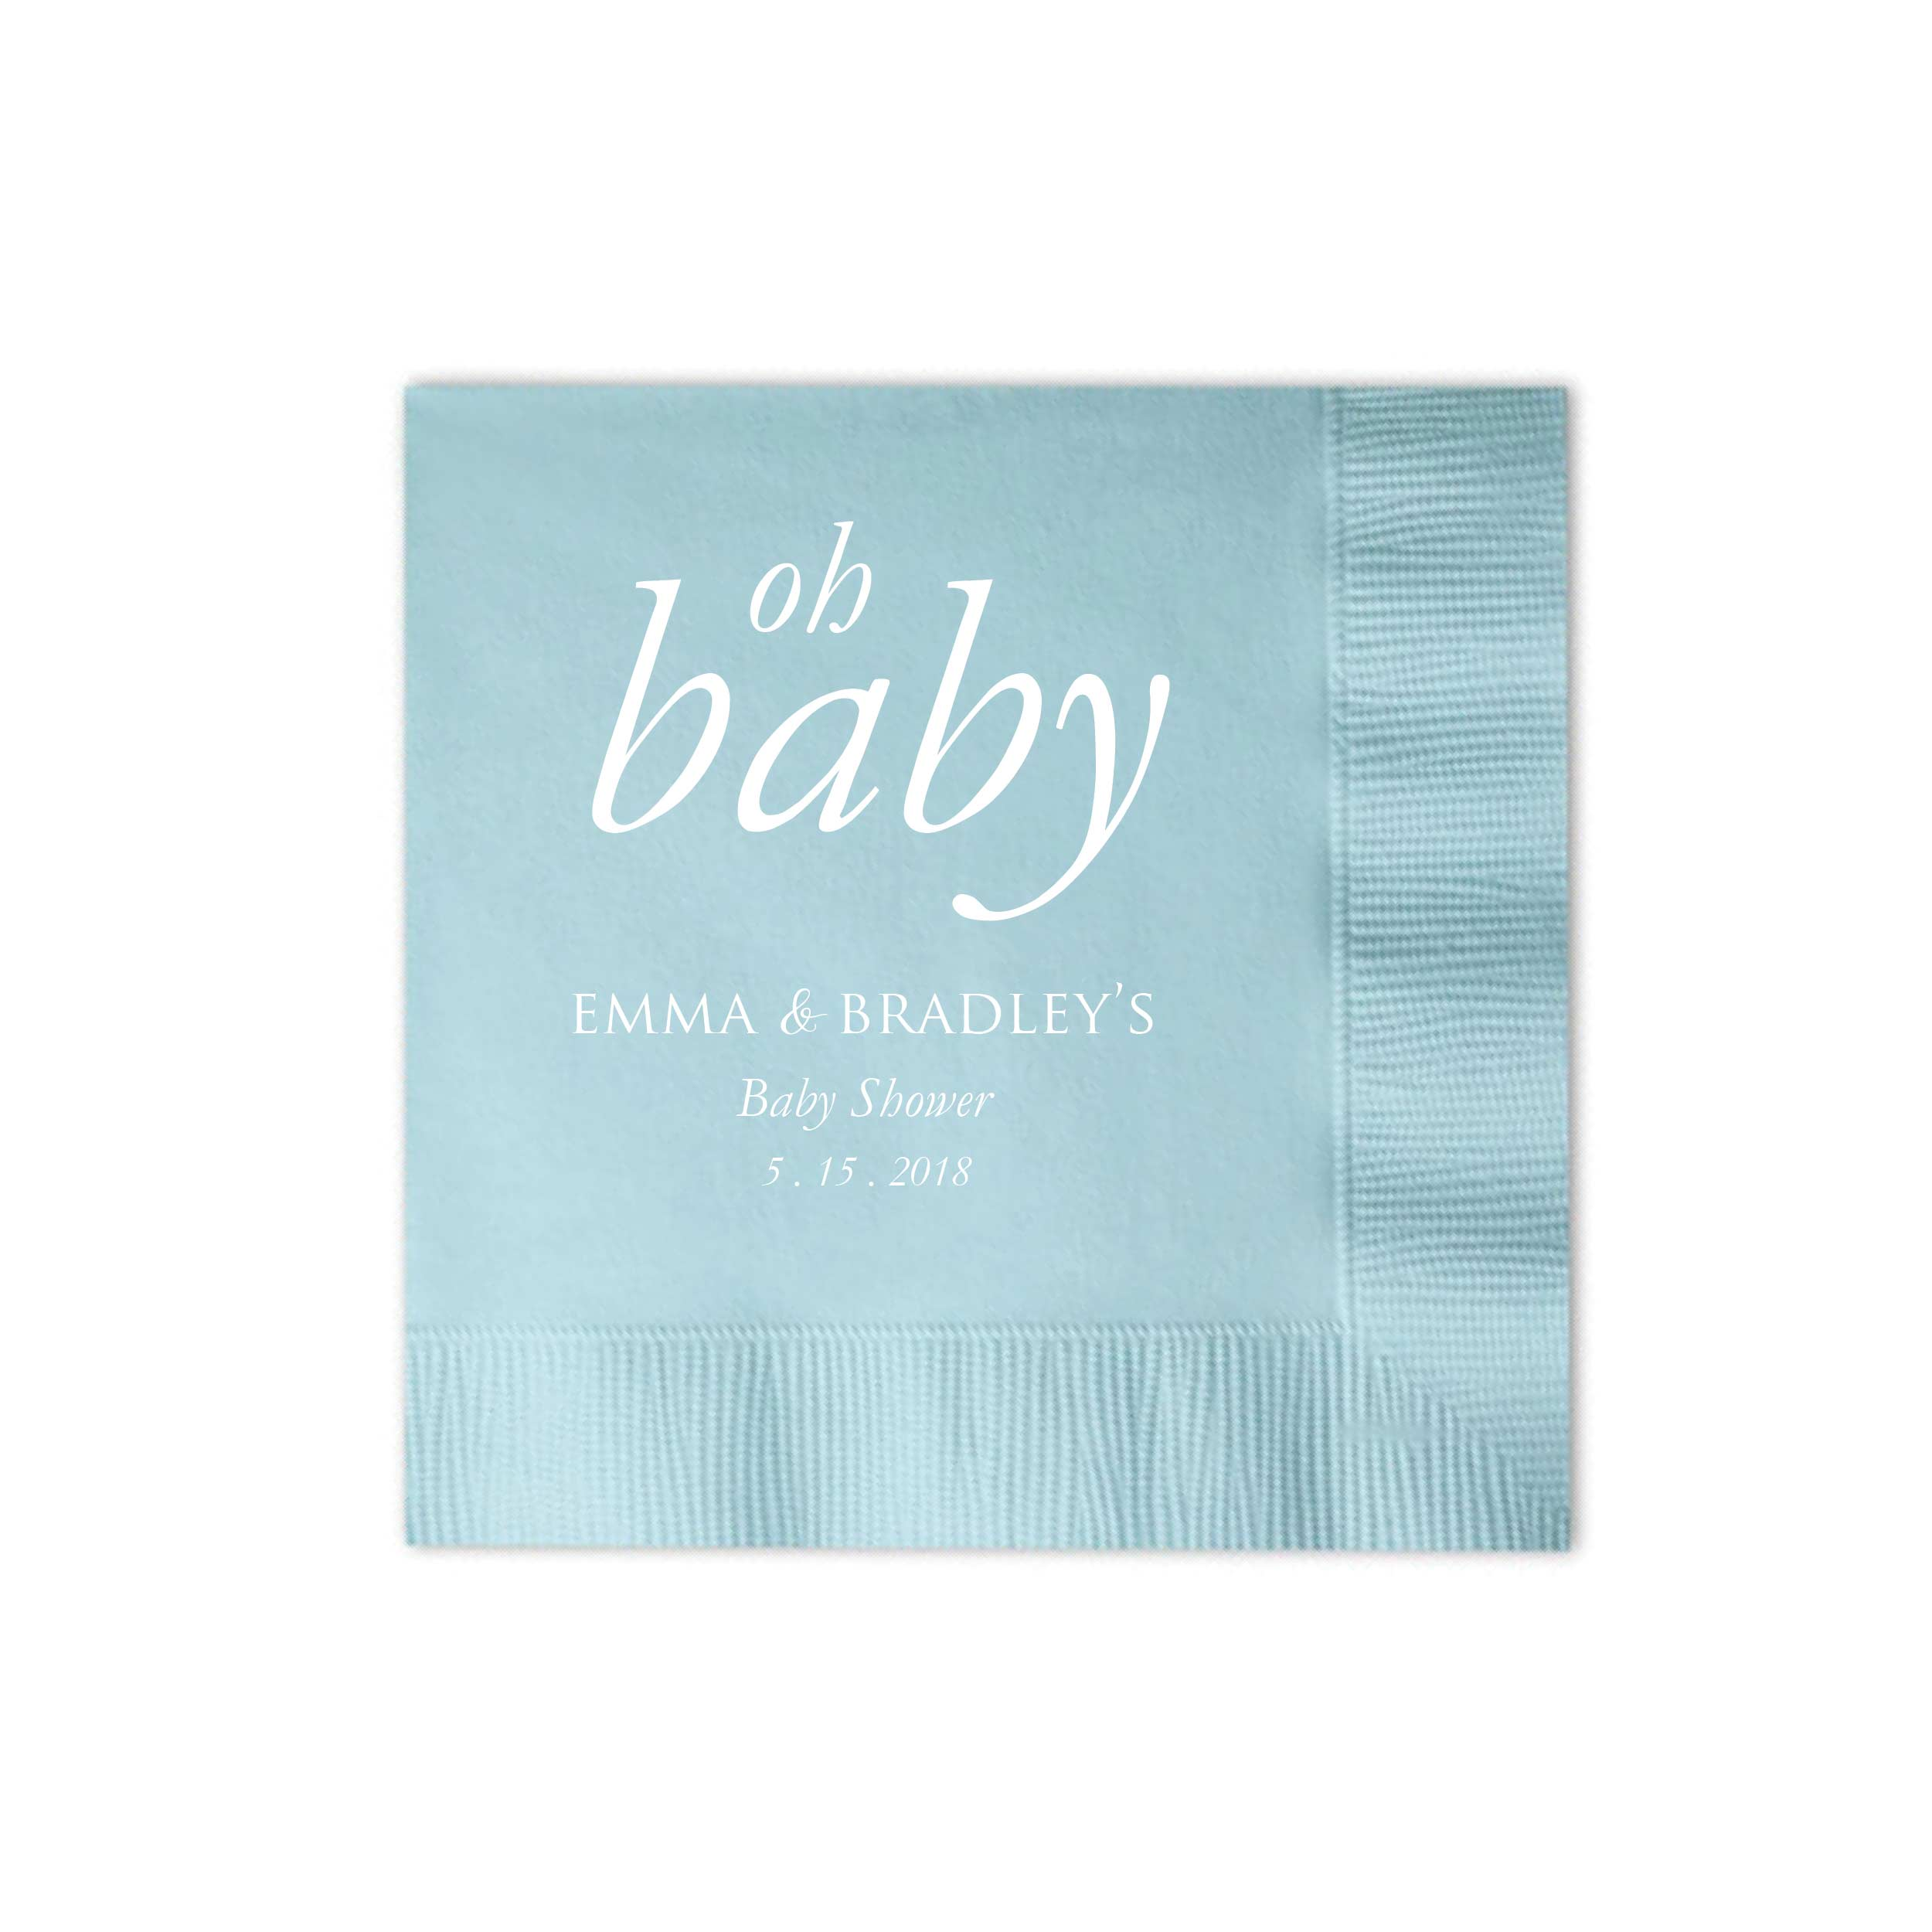 Captivating Personalized Baby Shower Napkins   Set Of 50 Oh Baby Napkin   Nora  Collection   Tea